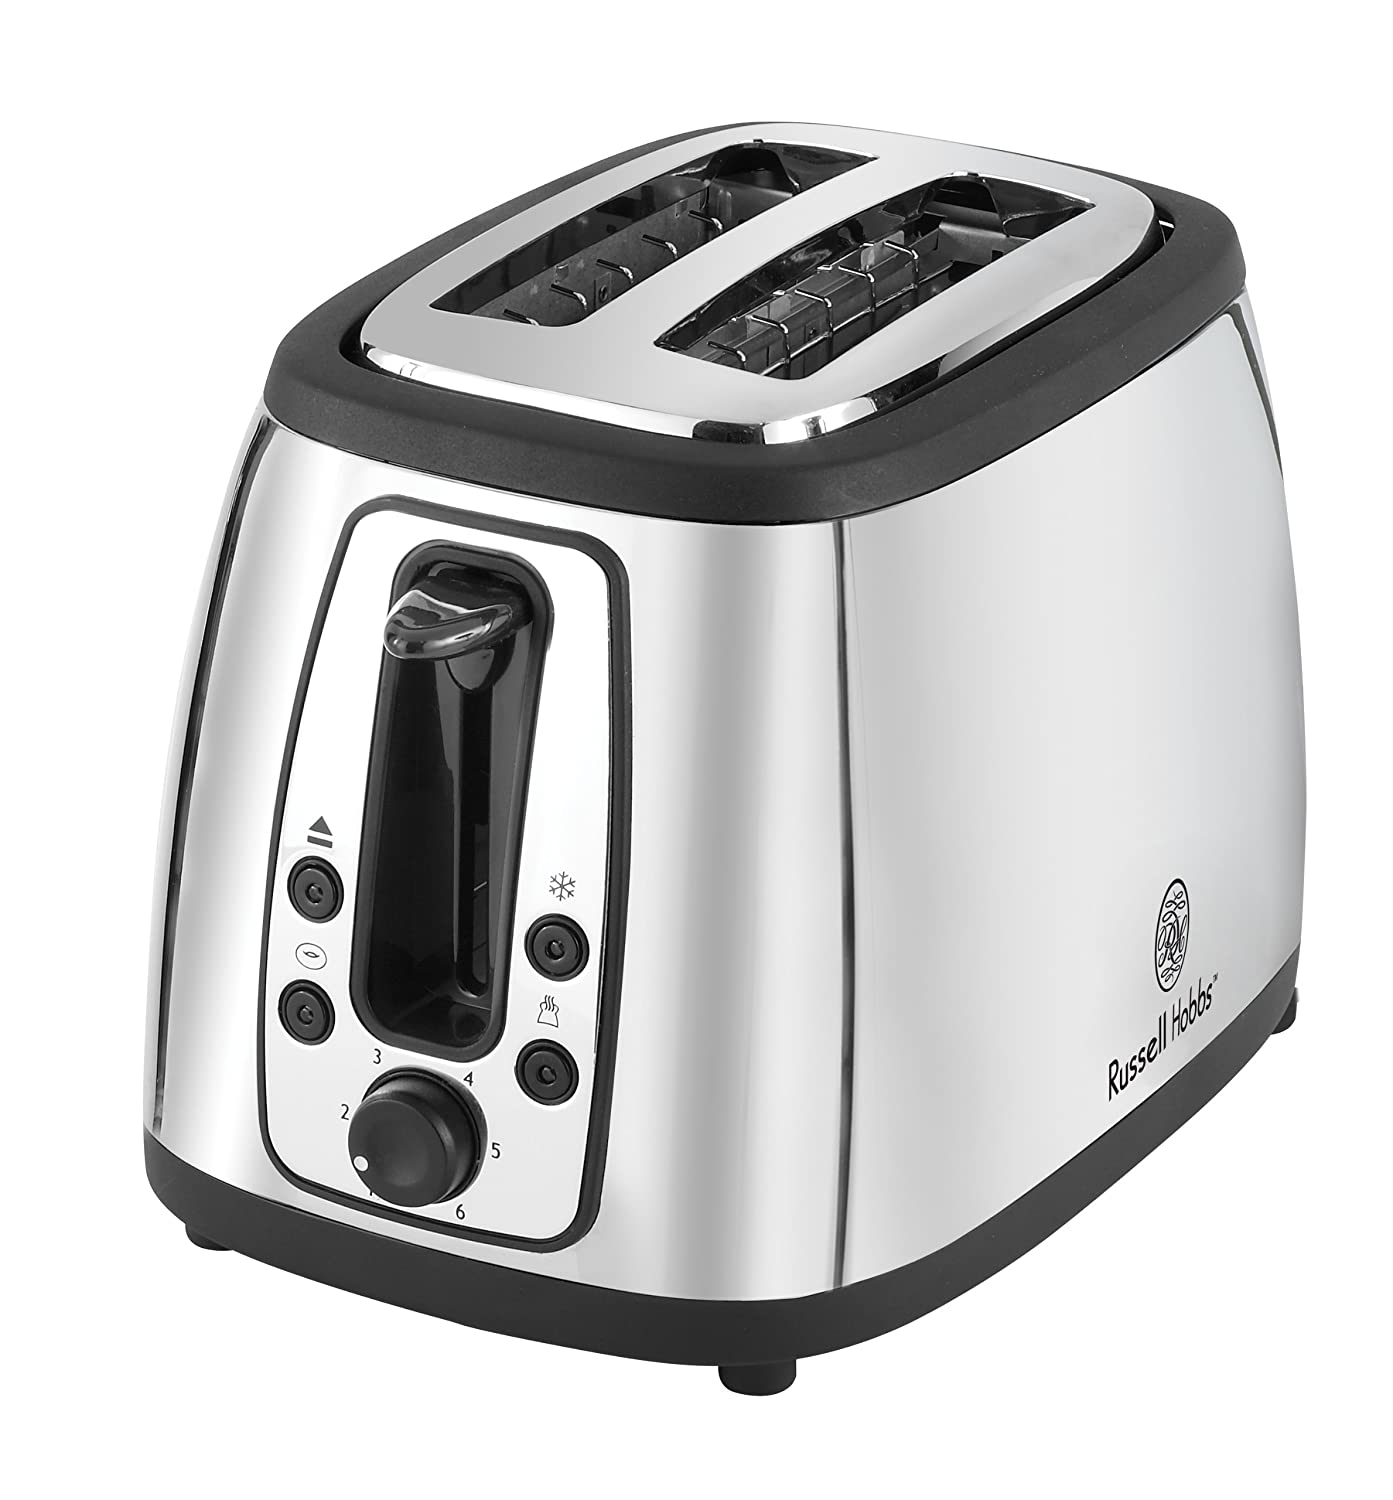 Best Toaster 2020.10 Best Russell Hobbs 2 Slice Toaster Reviews 2018 2020 On